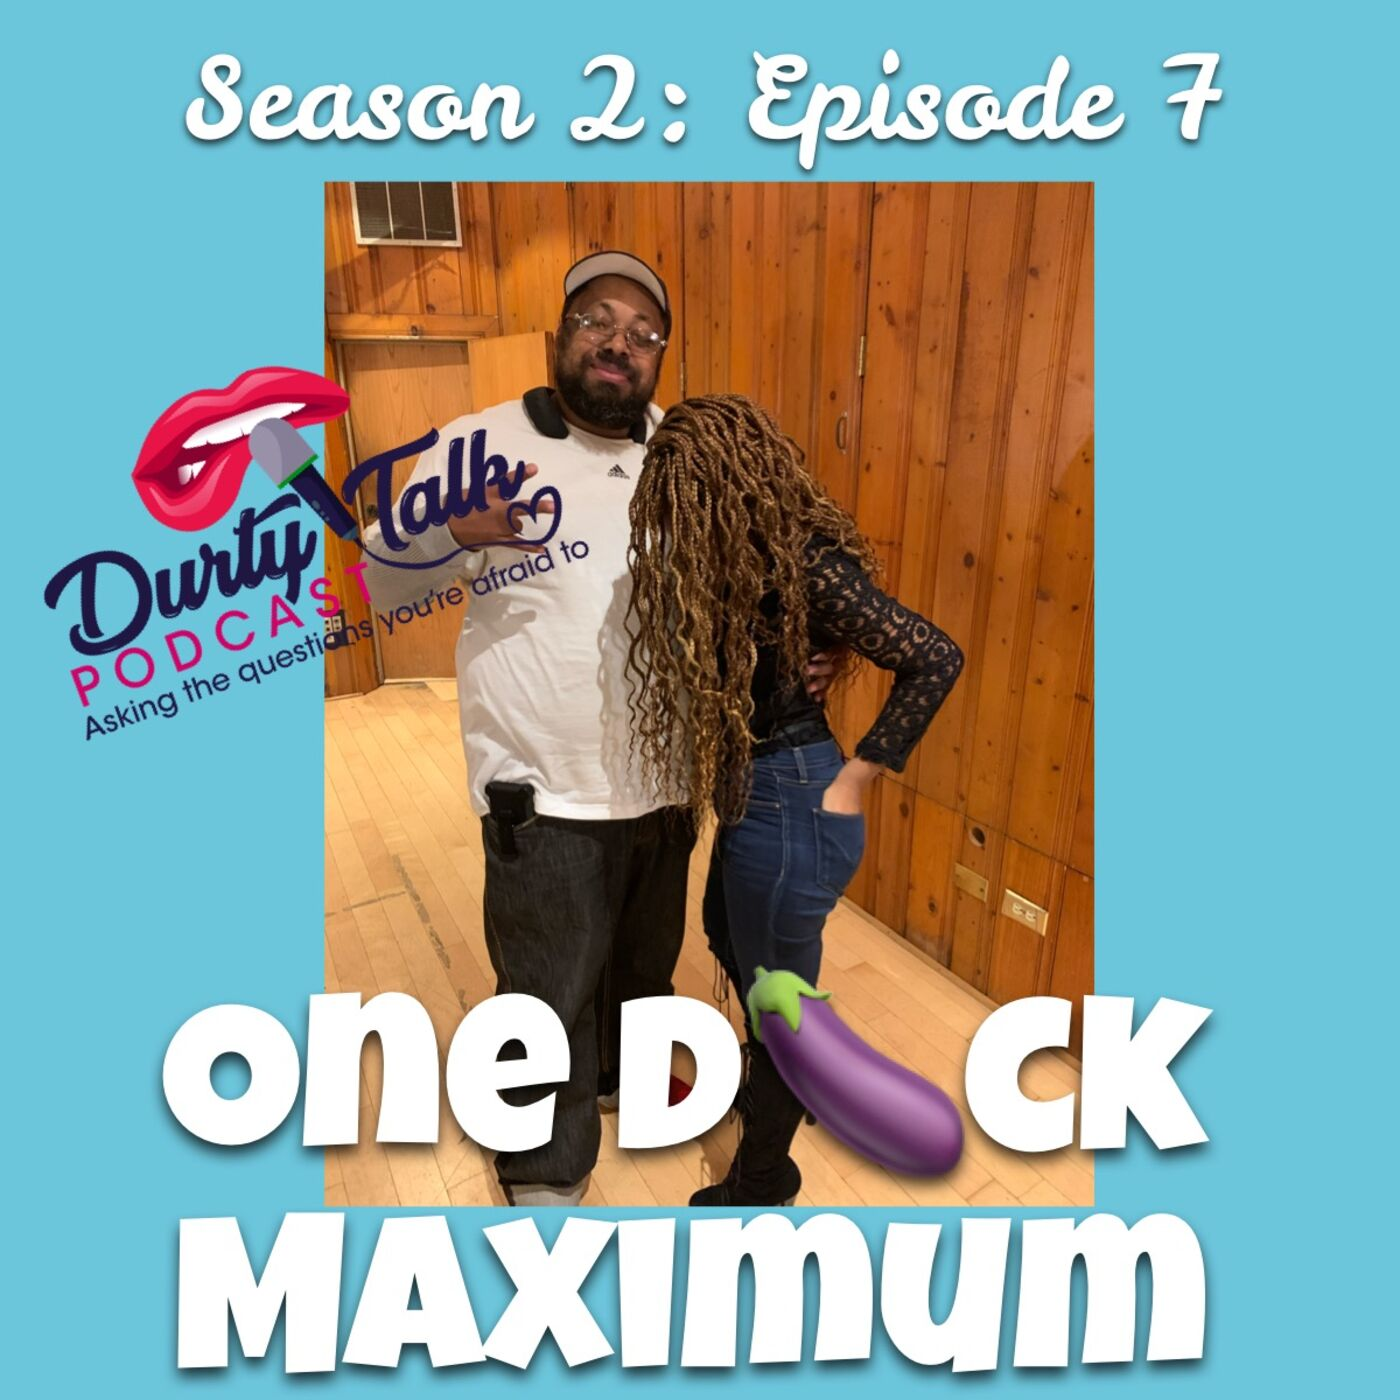 One D*ck Maximum - S2:E7